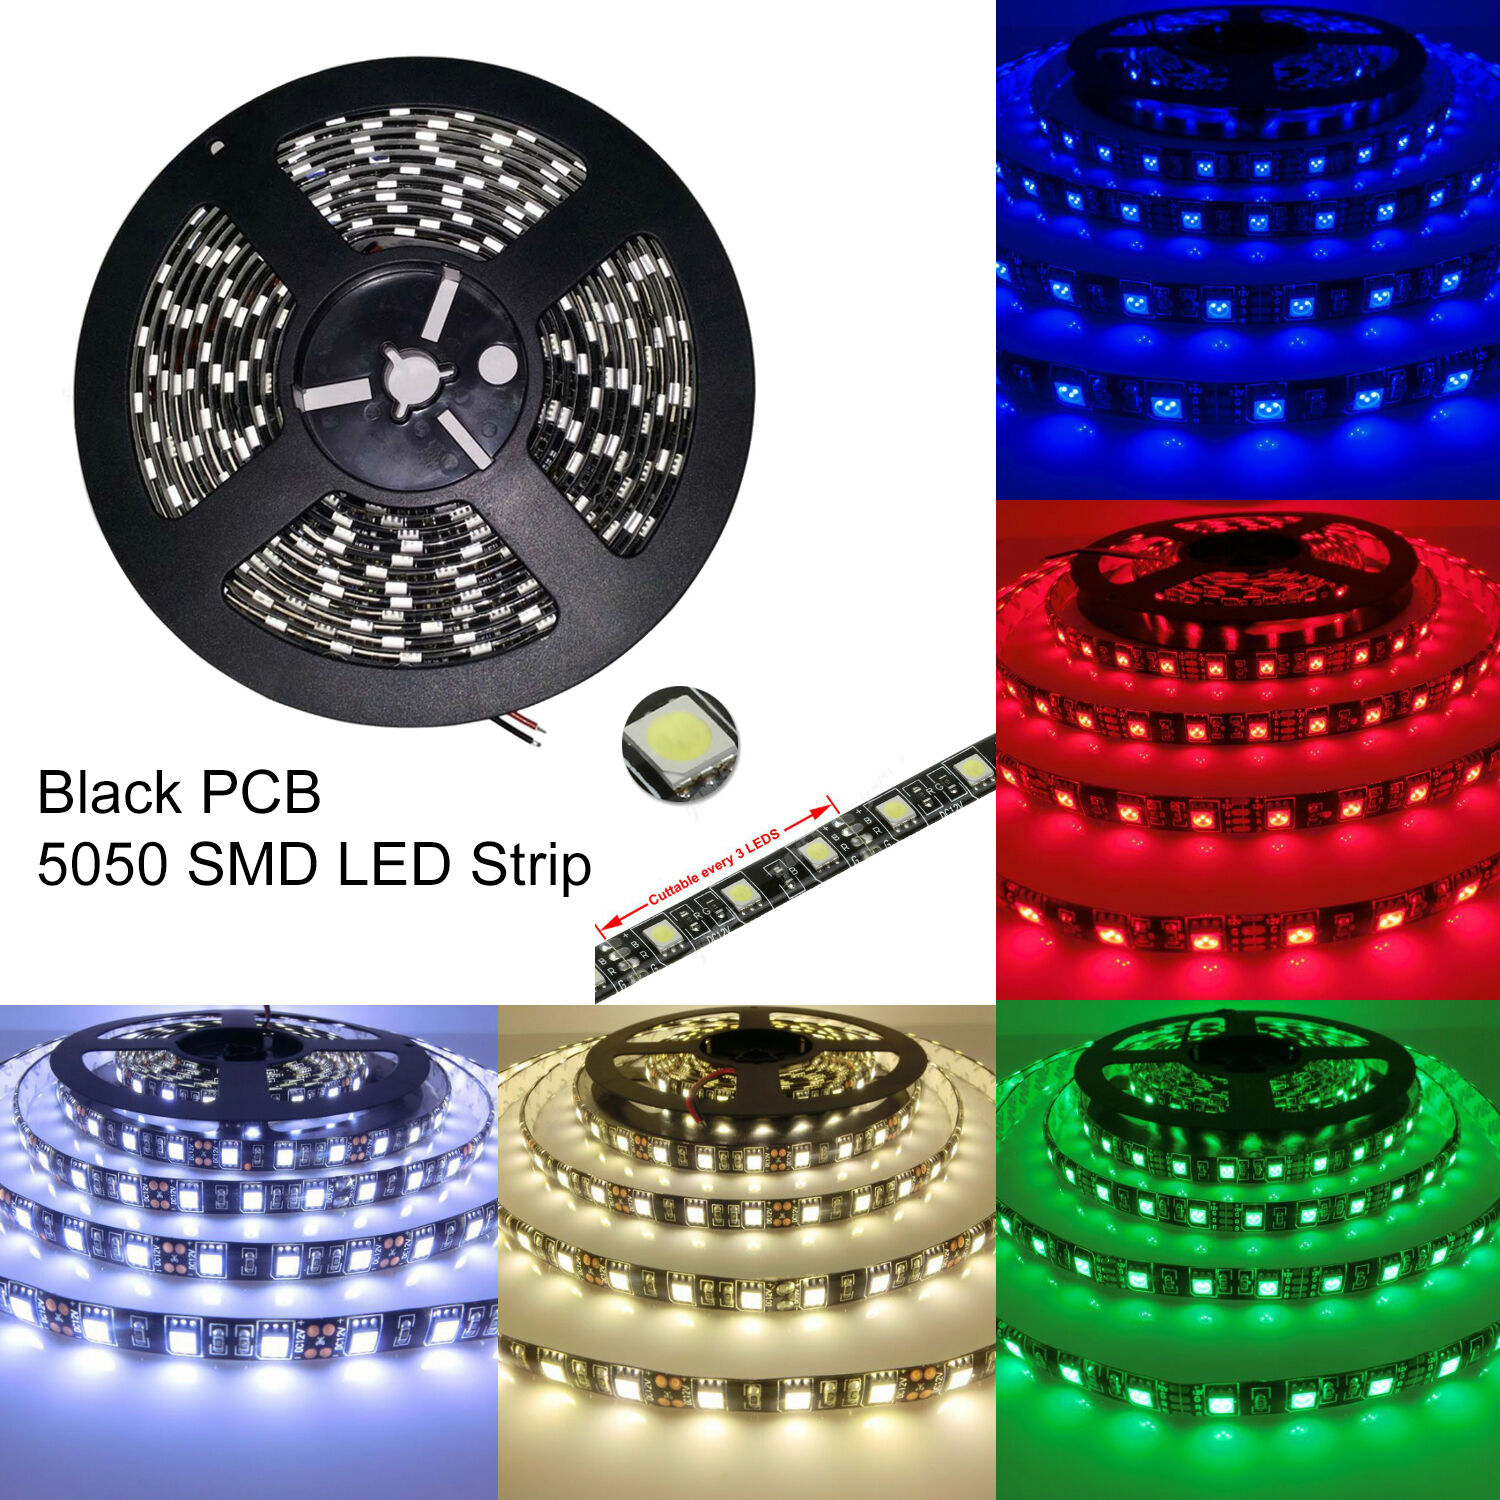 black pcb 5m 5050 smd 300 waterproof led flexible strip lights lamp 12v ebay. Black Bedroom Furniture Sets. Home Design Ideas